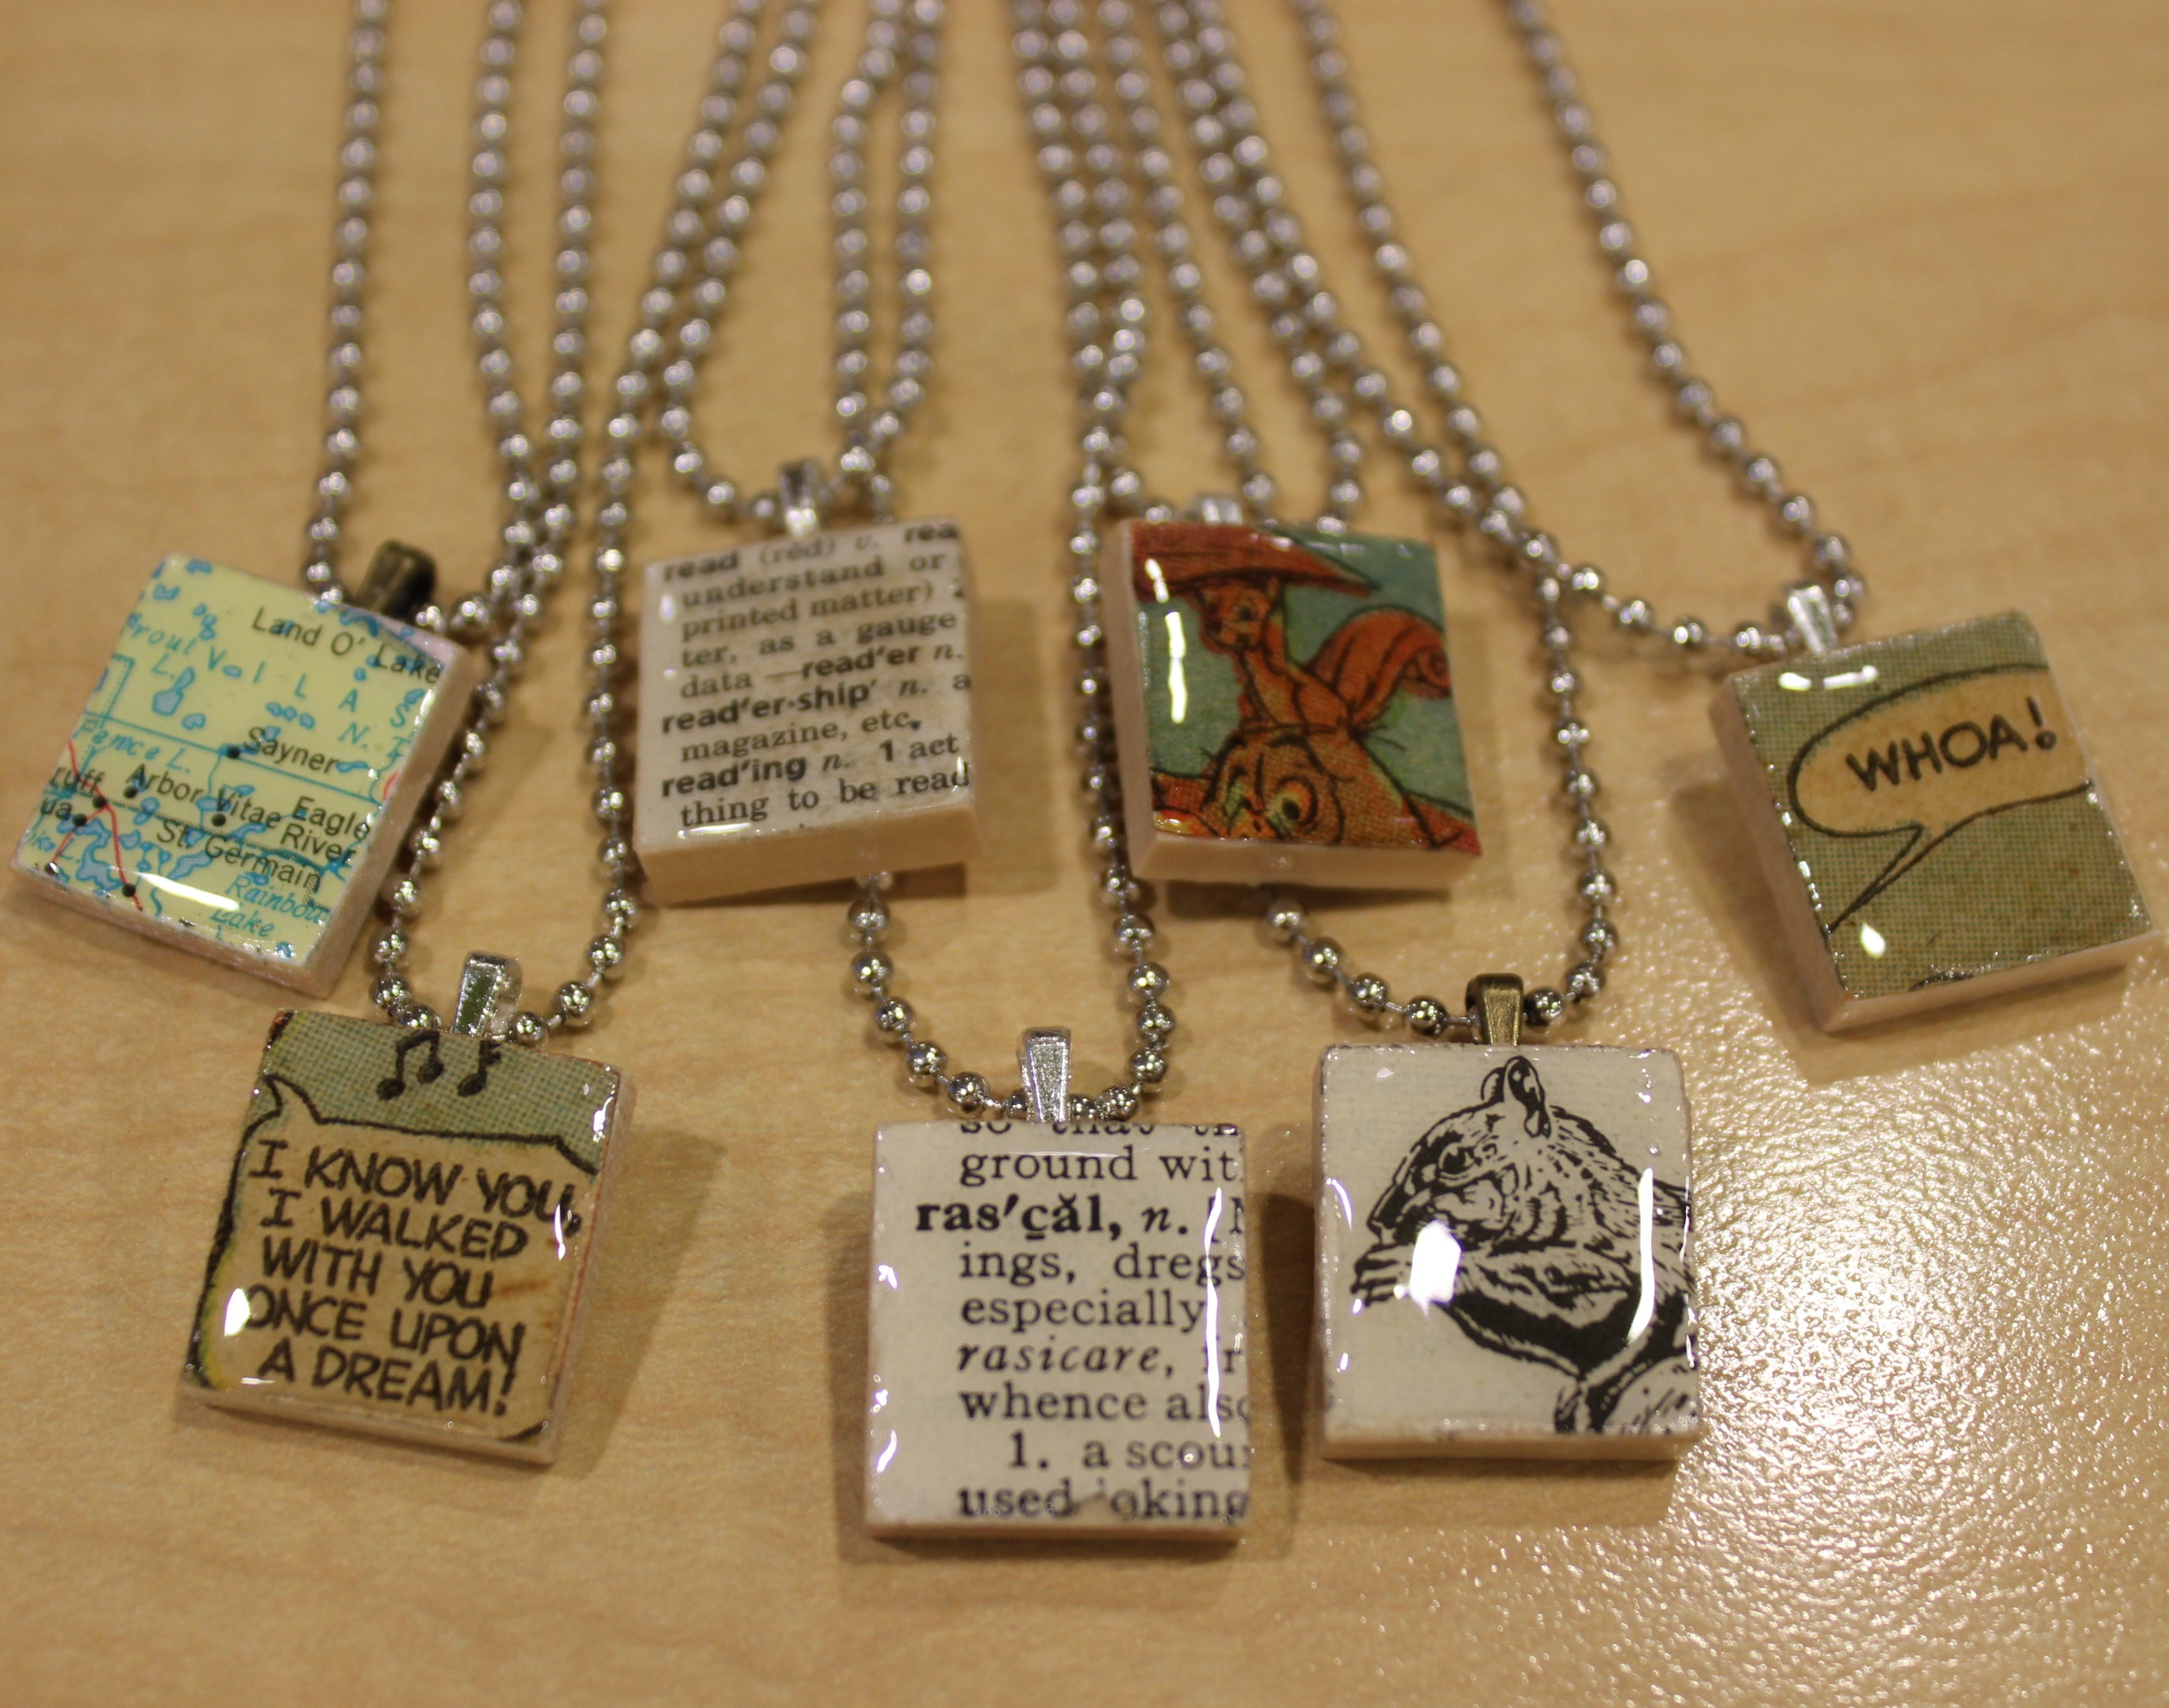 Scrabble Tile Pendant samples